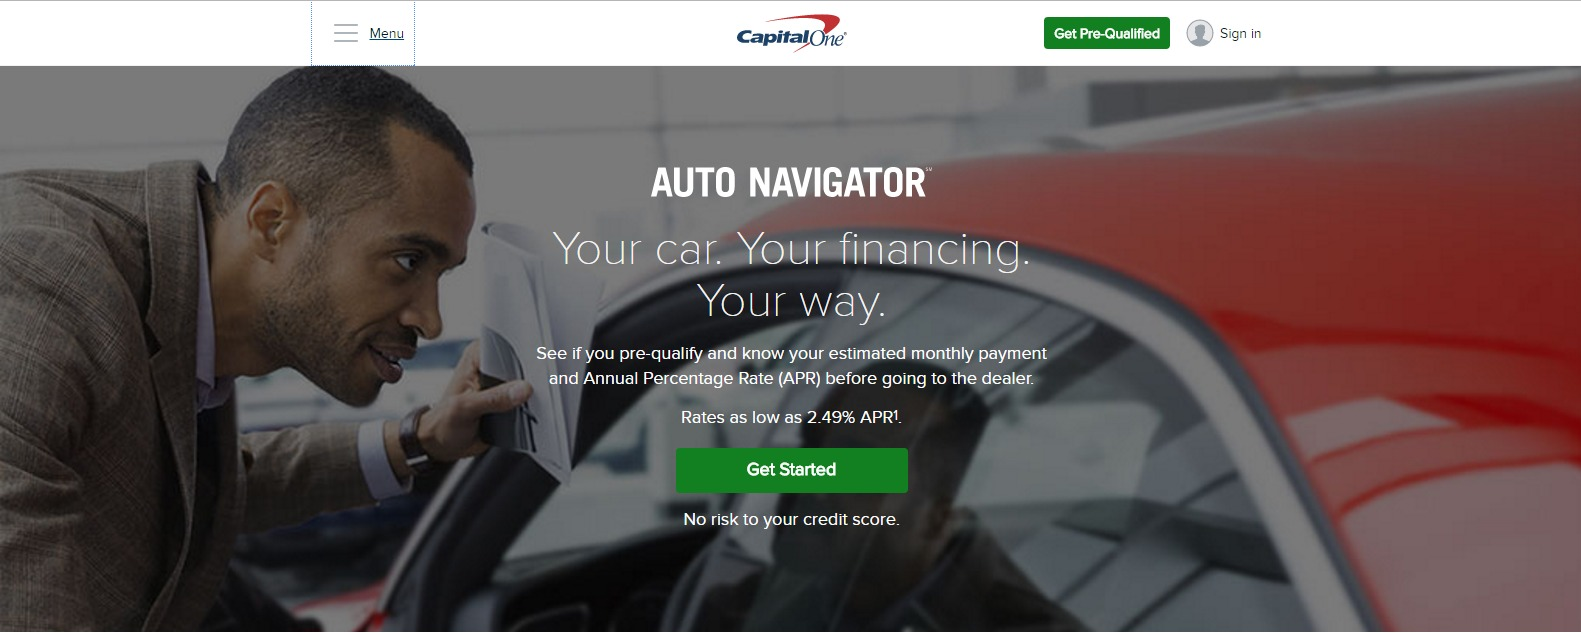 Preparing for An Upgrade Using Capital One's Auto ...